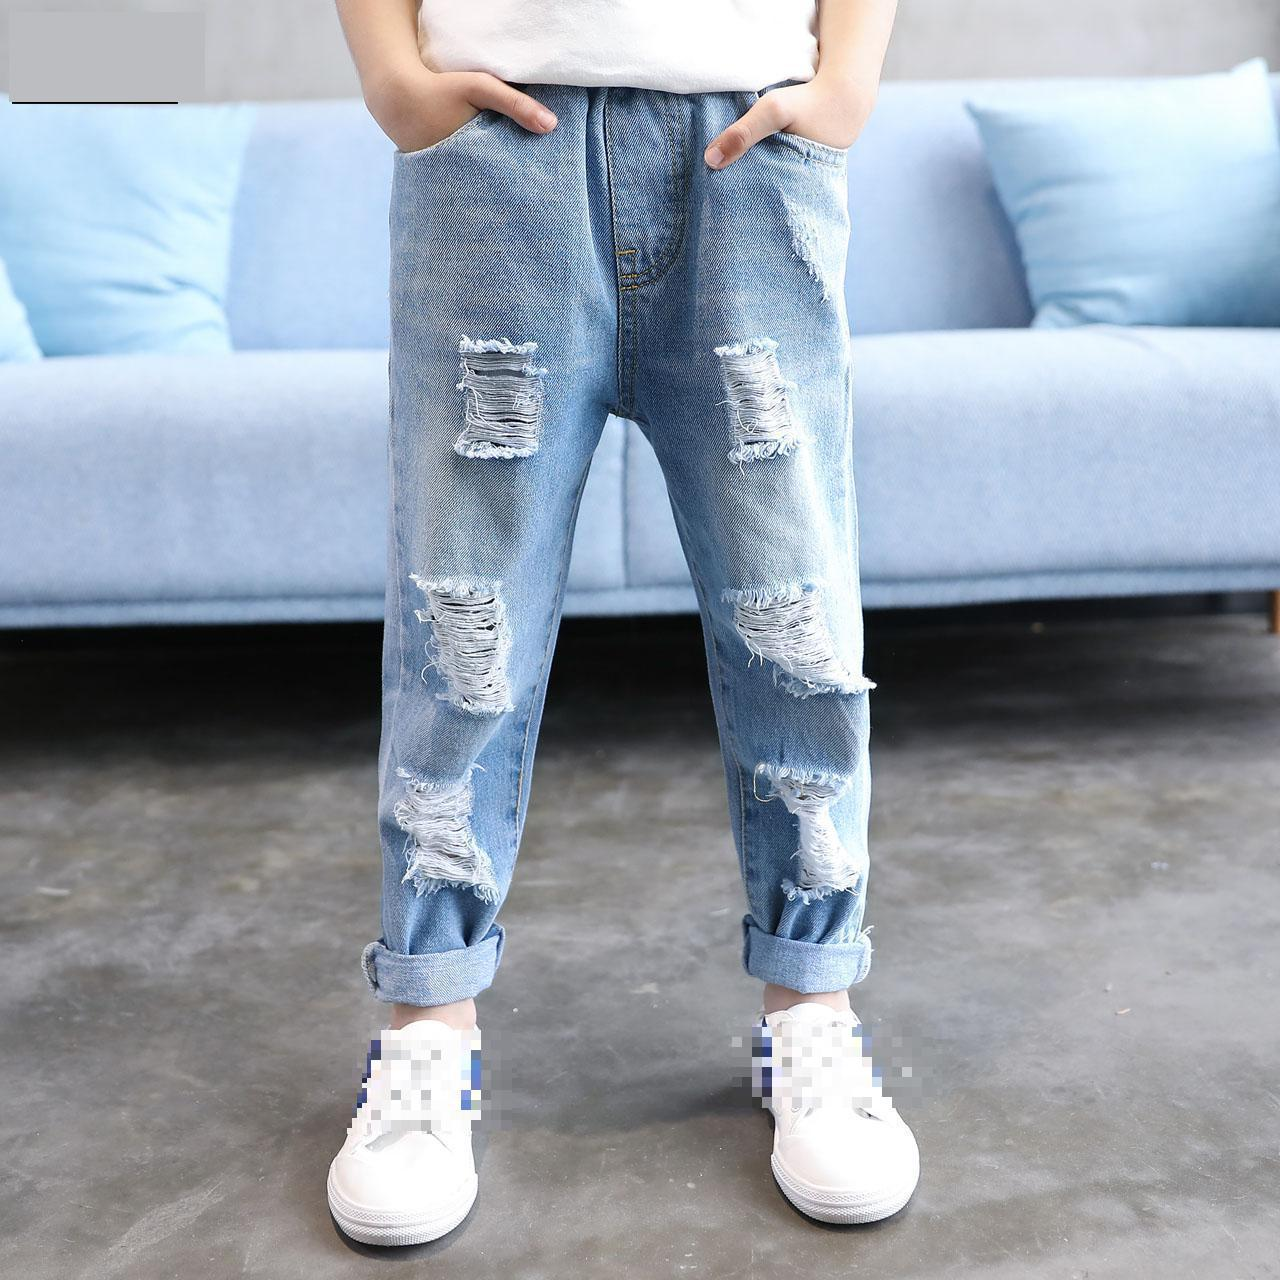 Children Broken Hole Pants 2017 Spring Jeans For Boy 4 5 6 7 8 9 10 11 12 13 Years Kids Ripped Jeans Baby Boy Soild Denim Pants high quality mens jeans ripped colorful printed demin pants slim fit straight casual classic hip hop trousers ripped streetwear